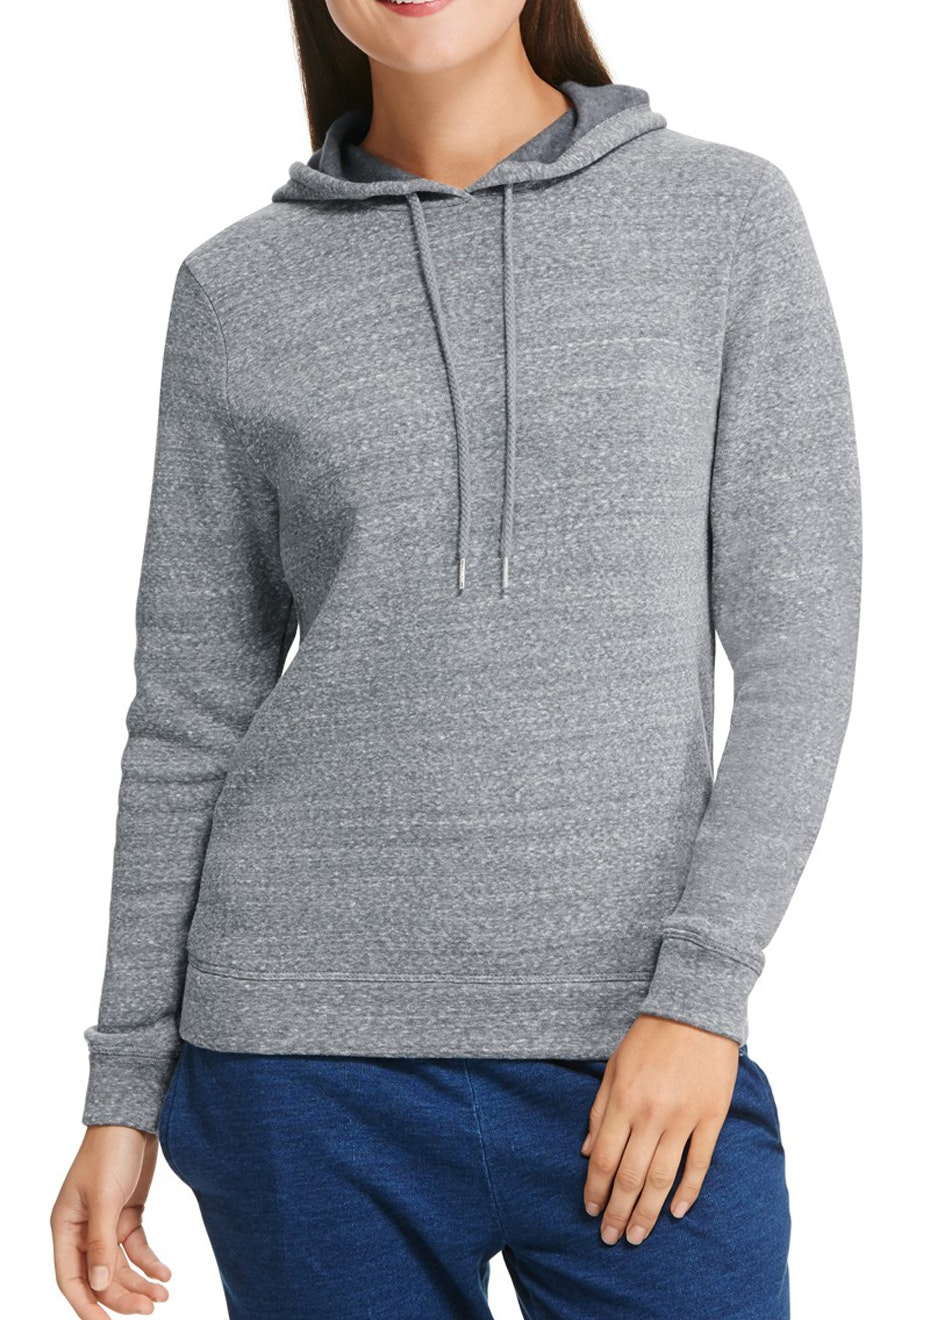 BONDS - Triblend Fleece Hoodie - Smoky Ember